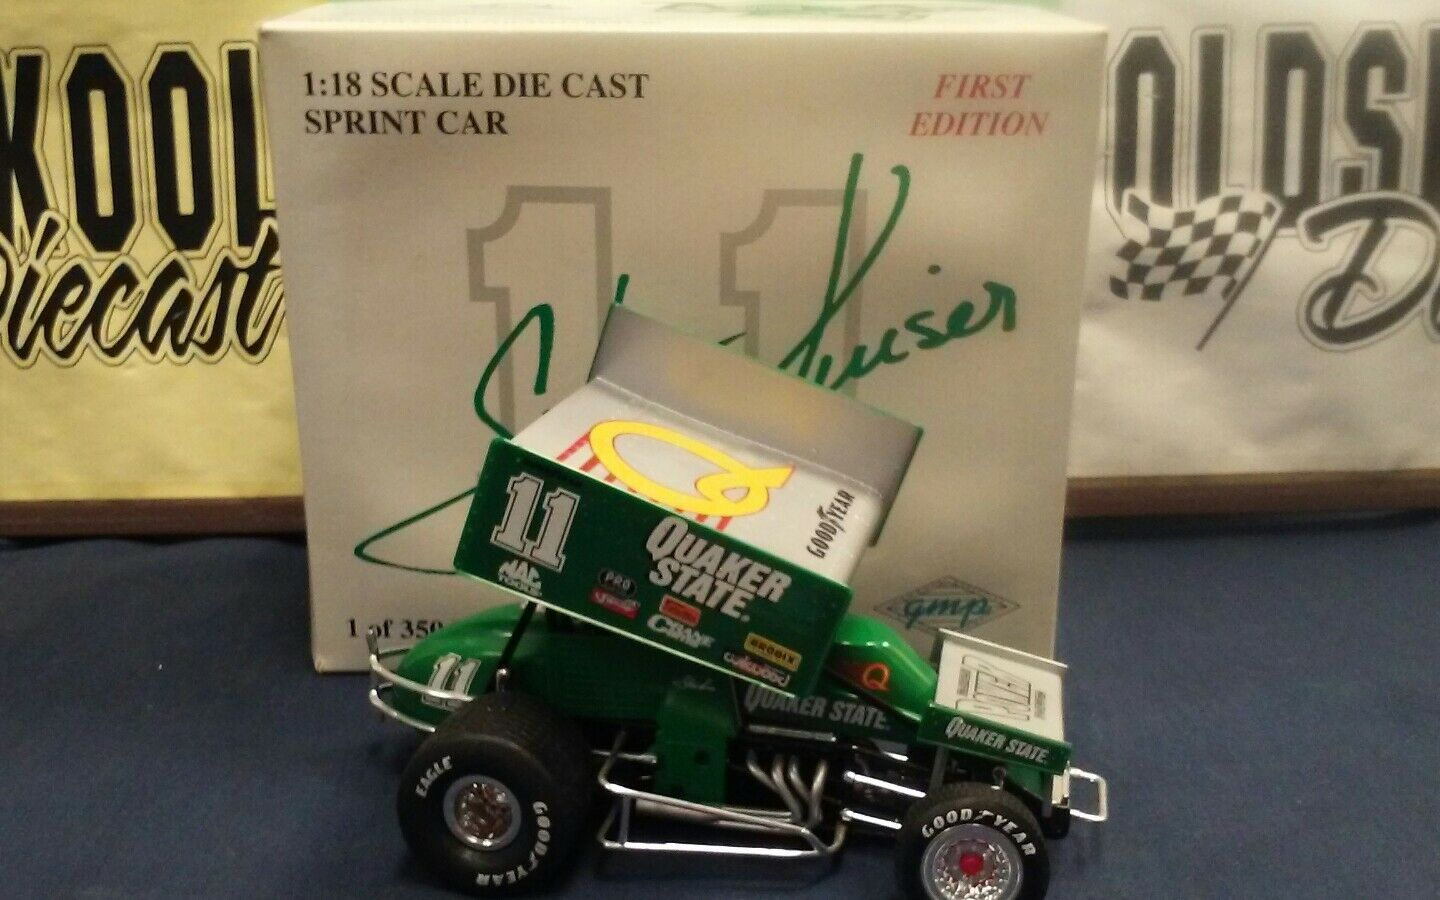 STEVE KINSER  11 1997 QUAKER STATE FIRST EDITION GMP 1 18 Sprint Car